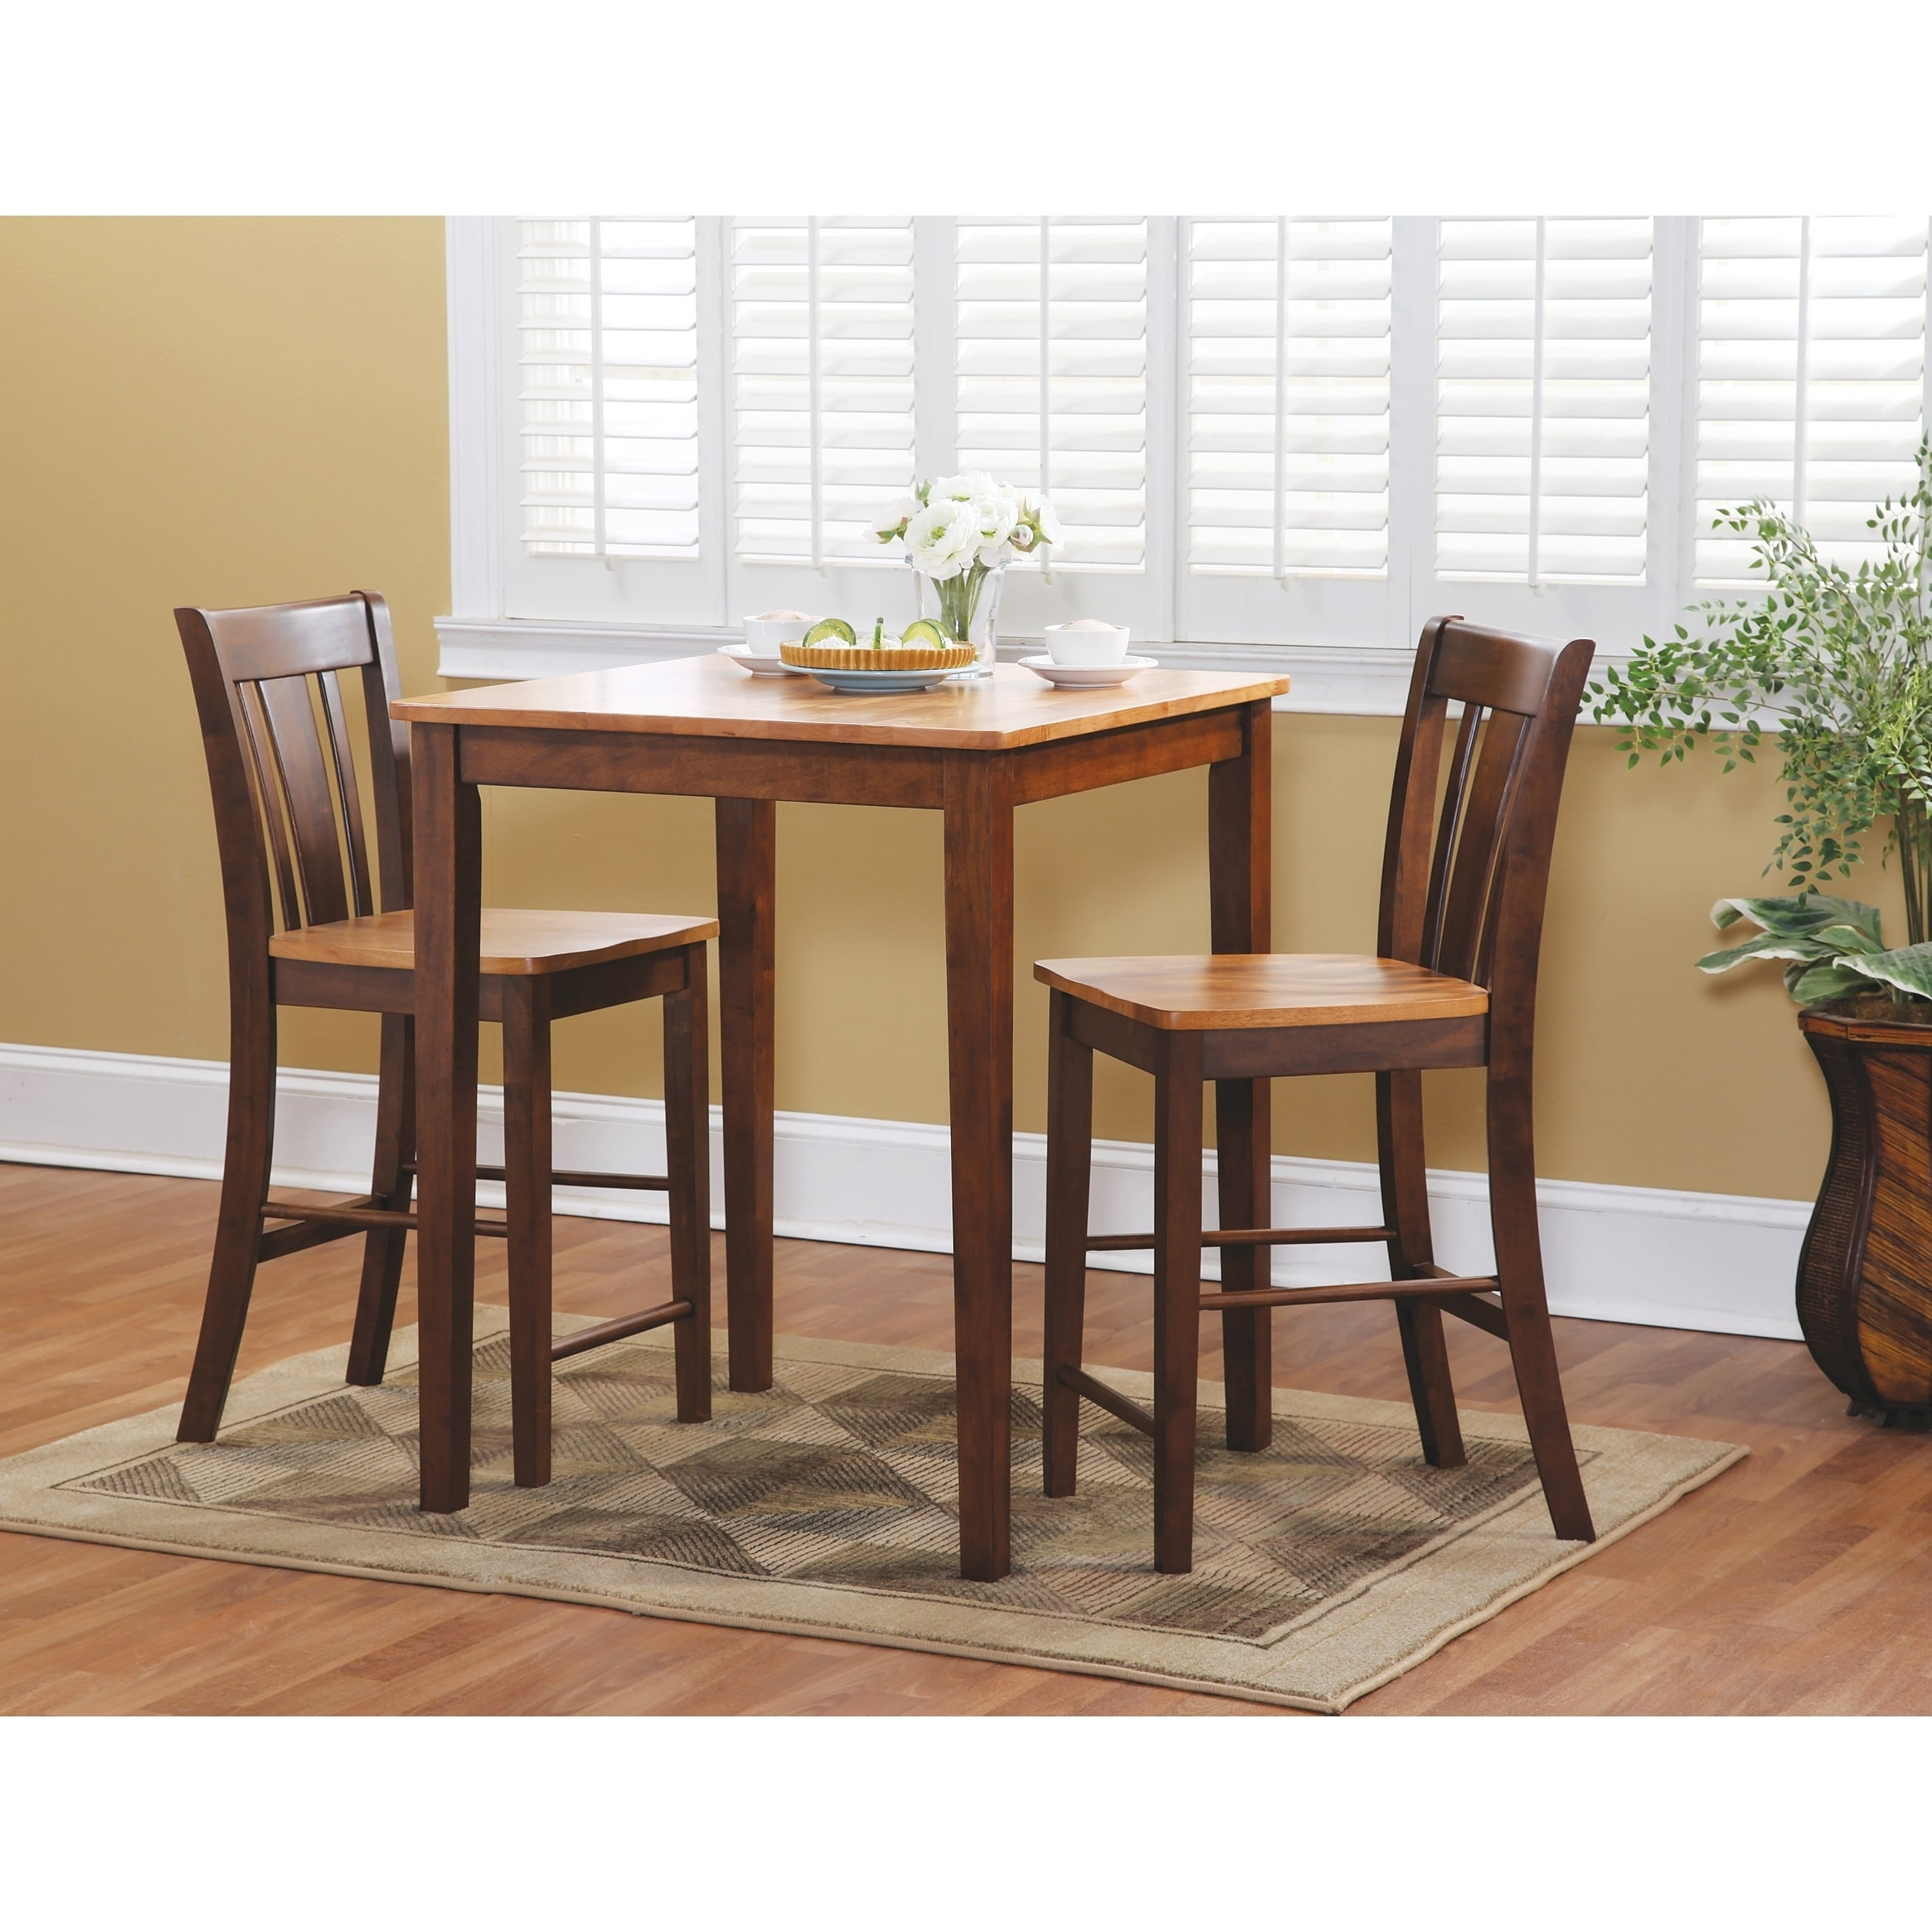 Shop International Concepts X Counter Height Dining Table - Counter height dining table with stools